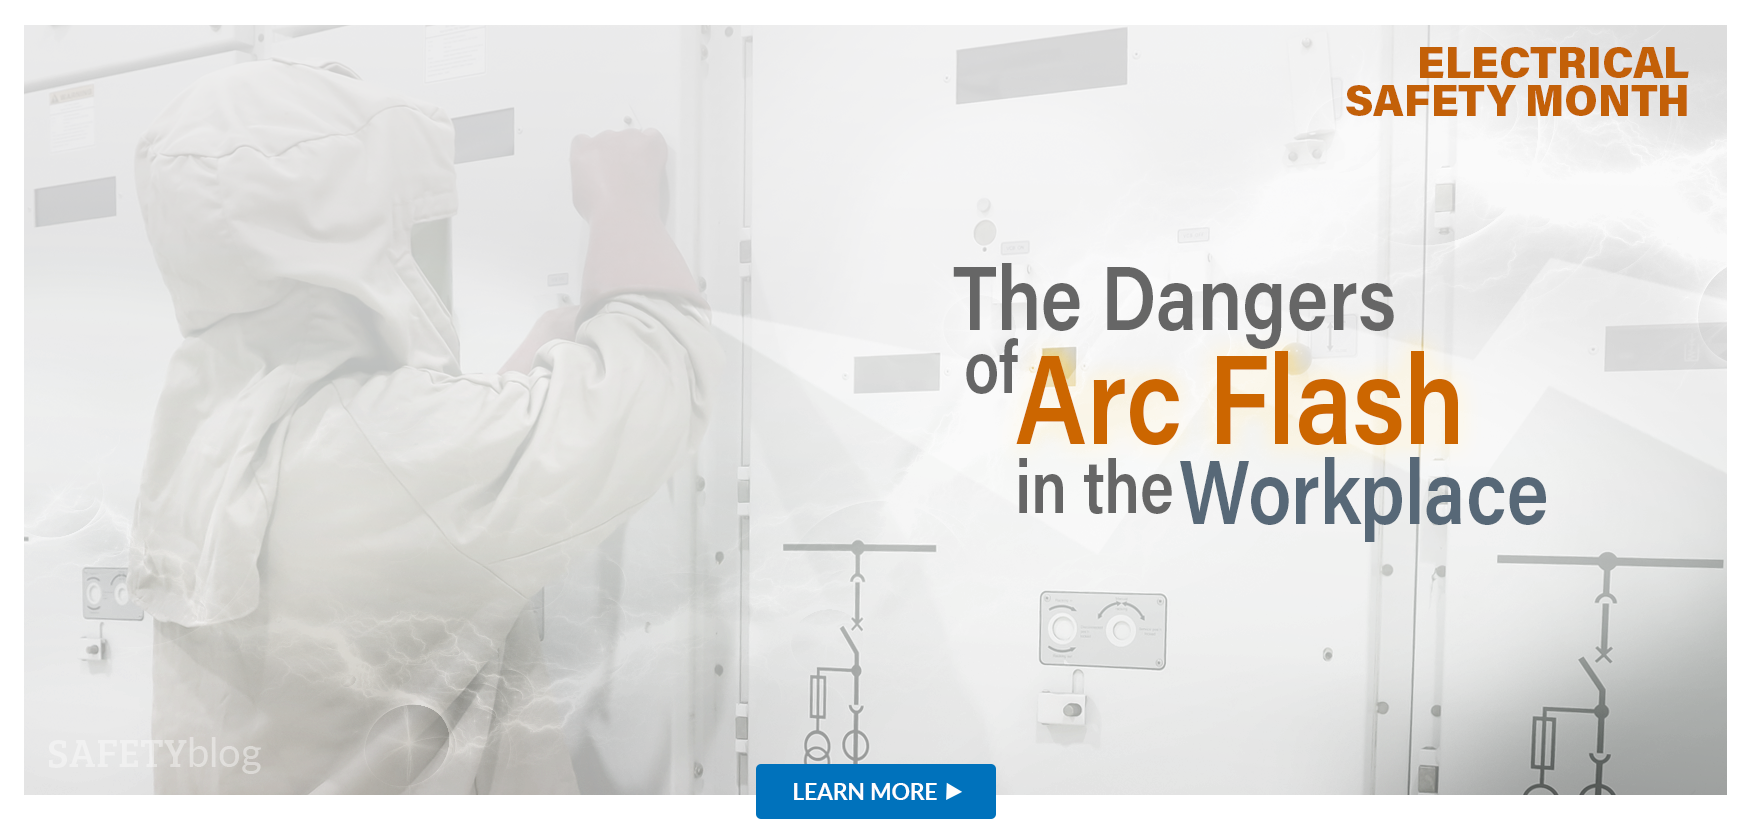 The Dangers of Arc Flash in the workplace